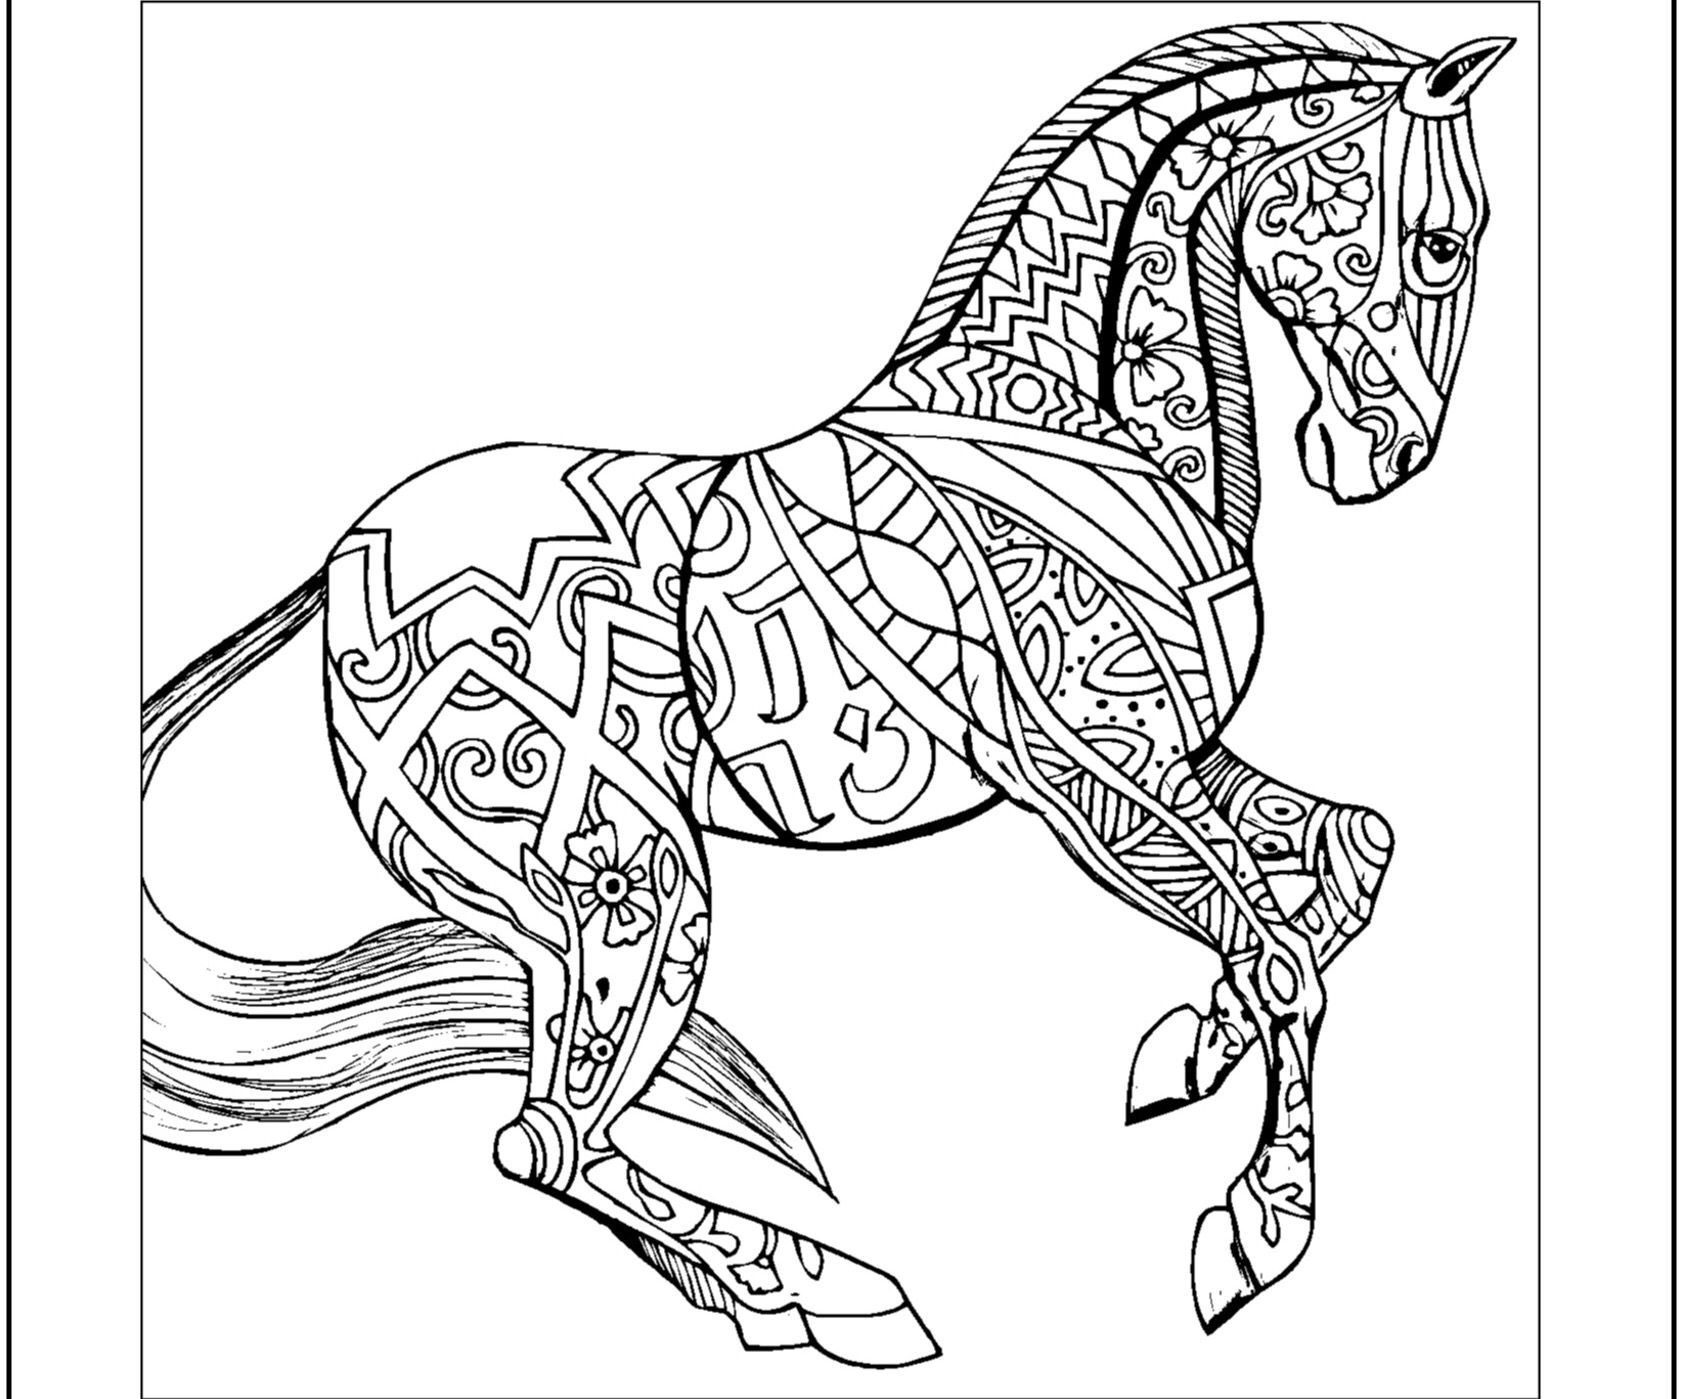 coloring pages of horses to print fun horse coloring pages for your kids printable horses print pages of to coloring